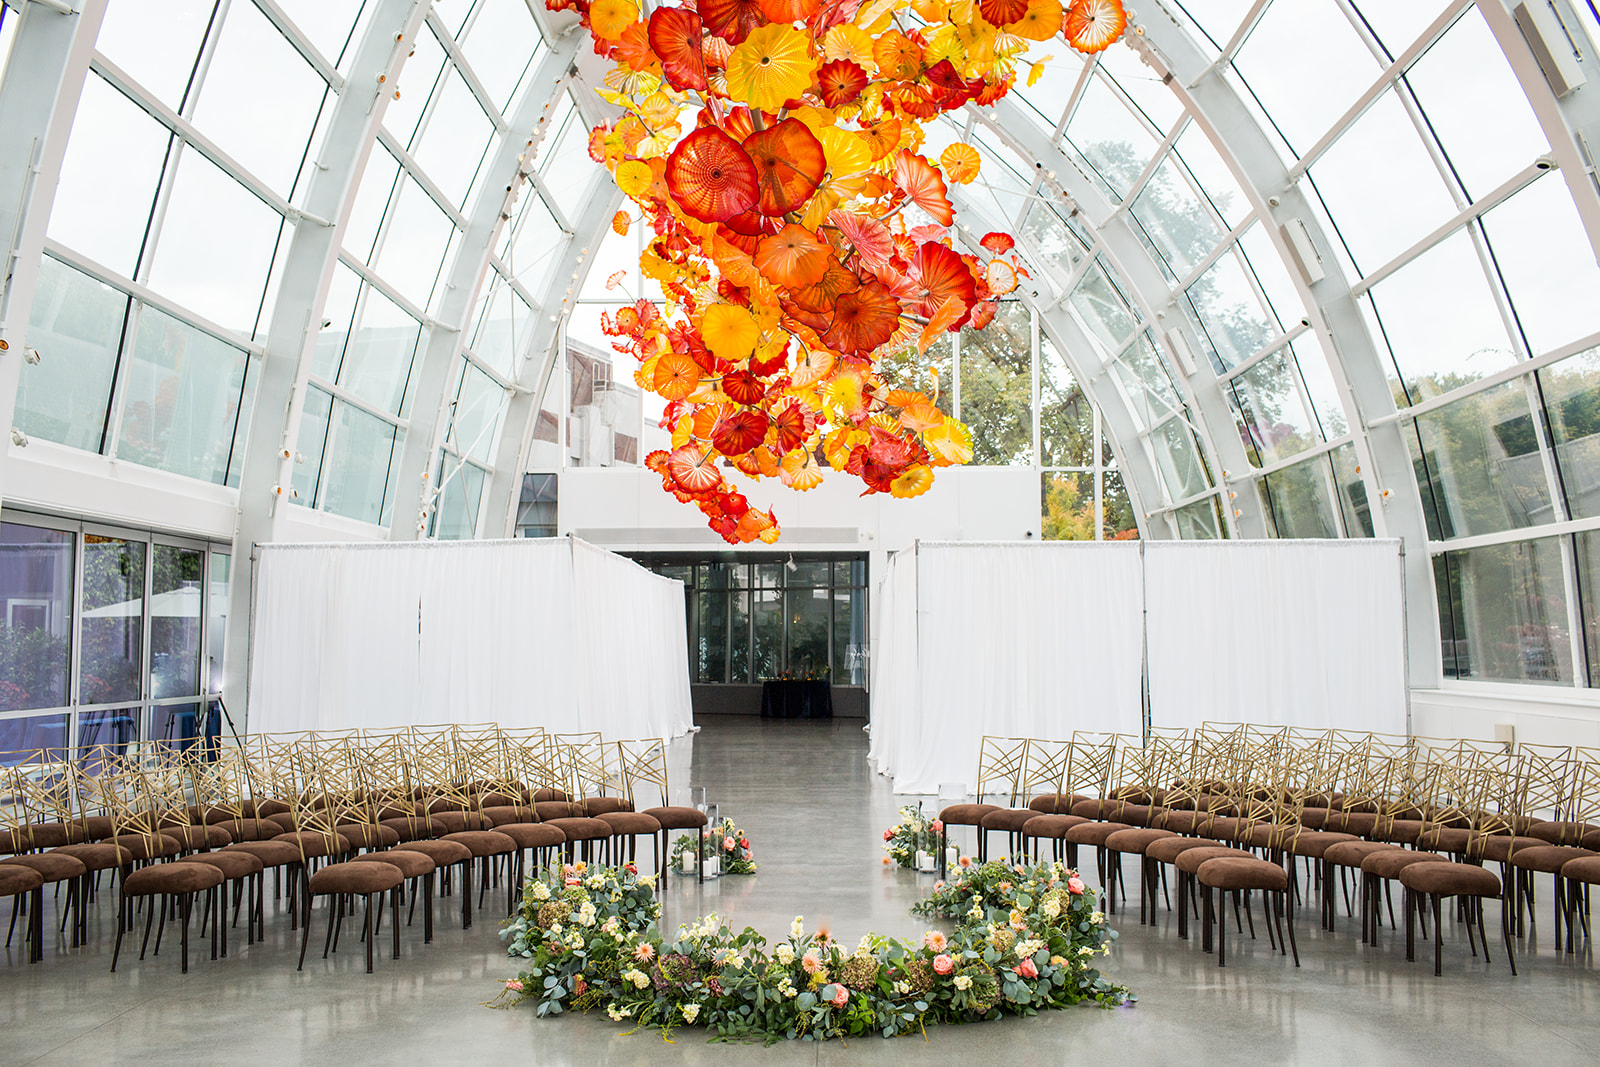 Fall ceremony navy blue and burnt orange wedding setup with low circle of flowers on the floor and guest chairs around it at Chihuly | Flora Nova Design Seattle